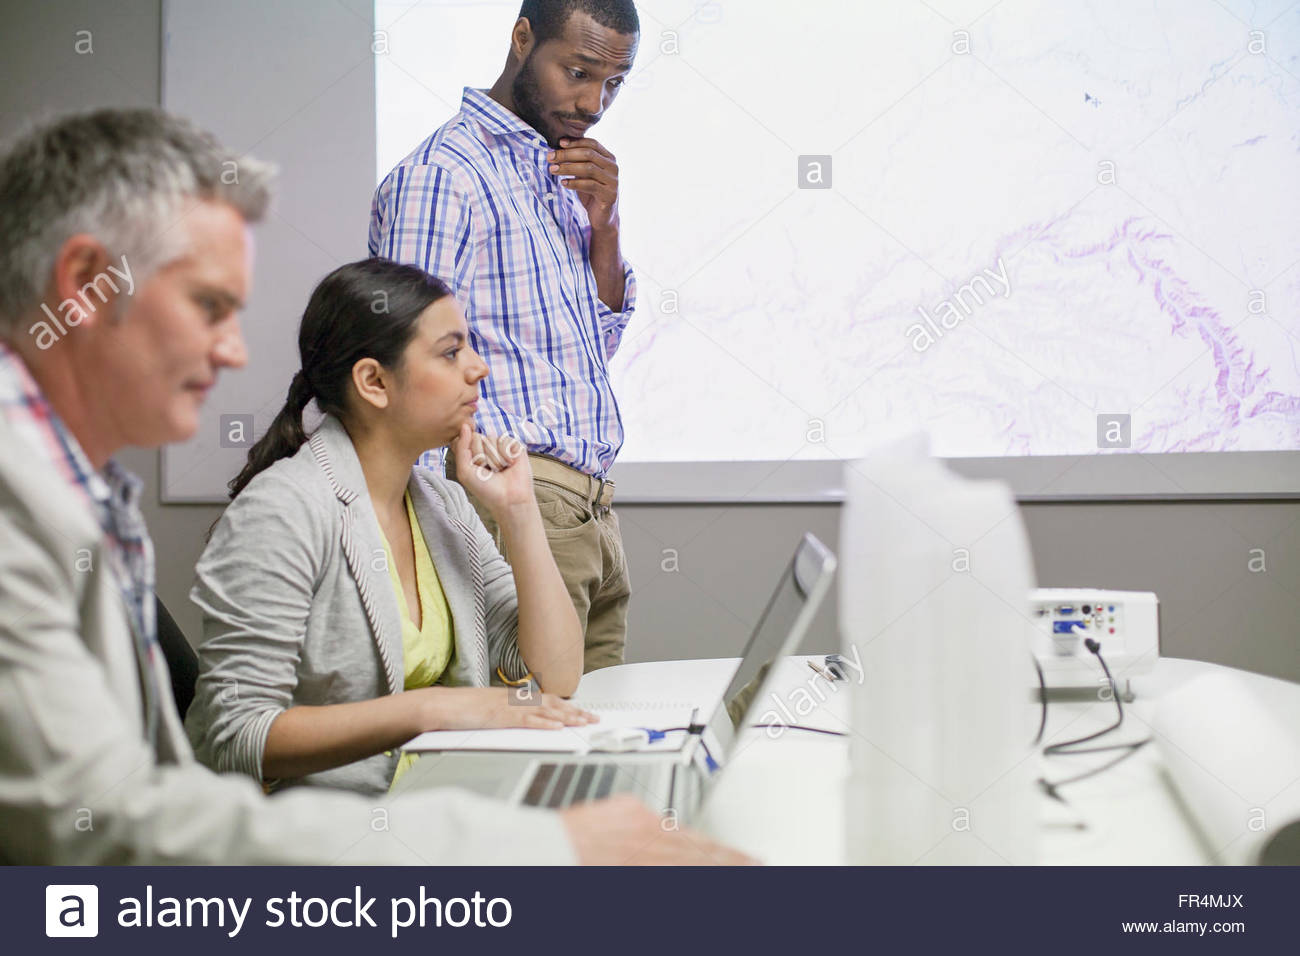 colleagues reviewing presentation together - Stock Image